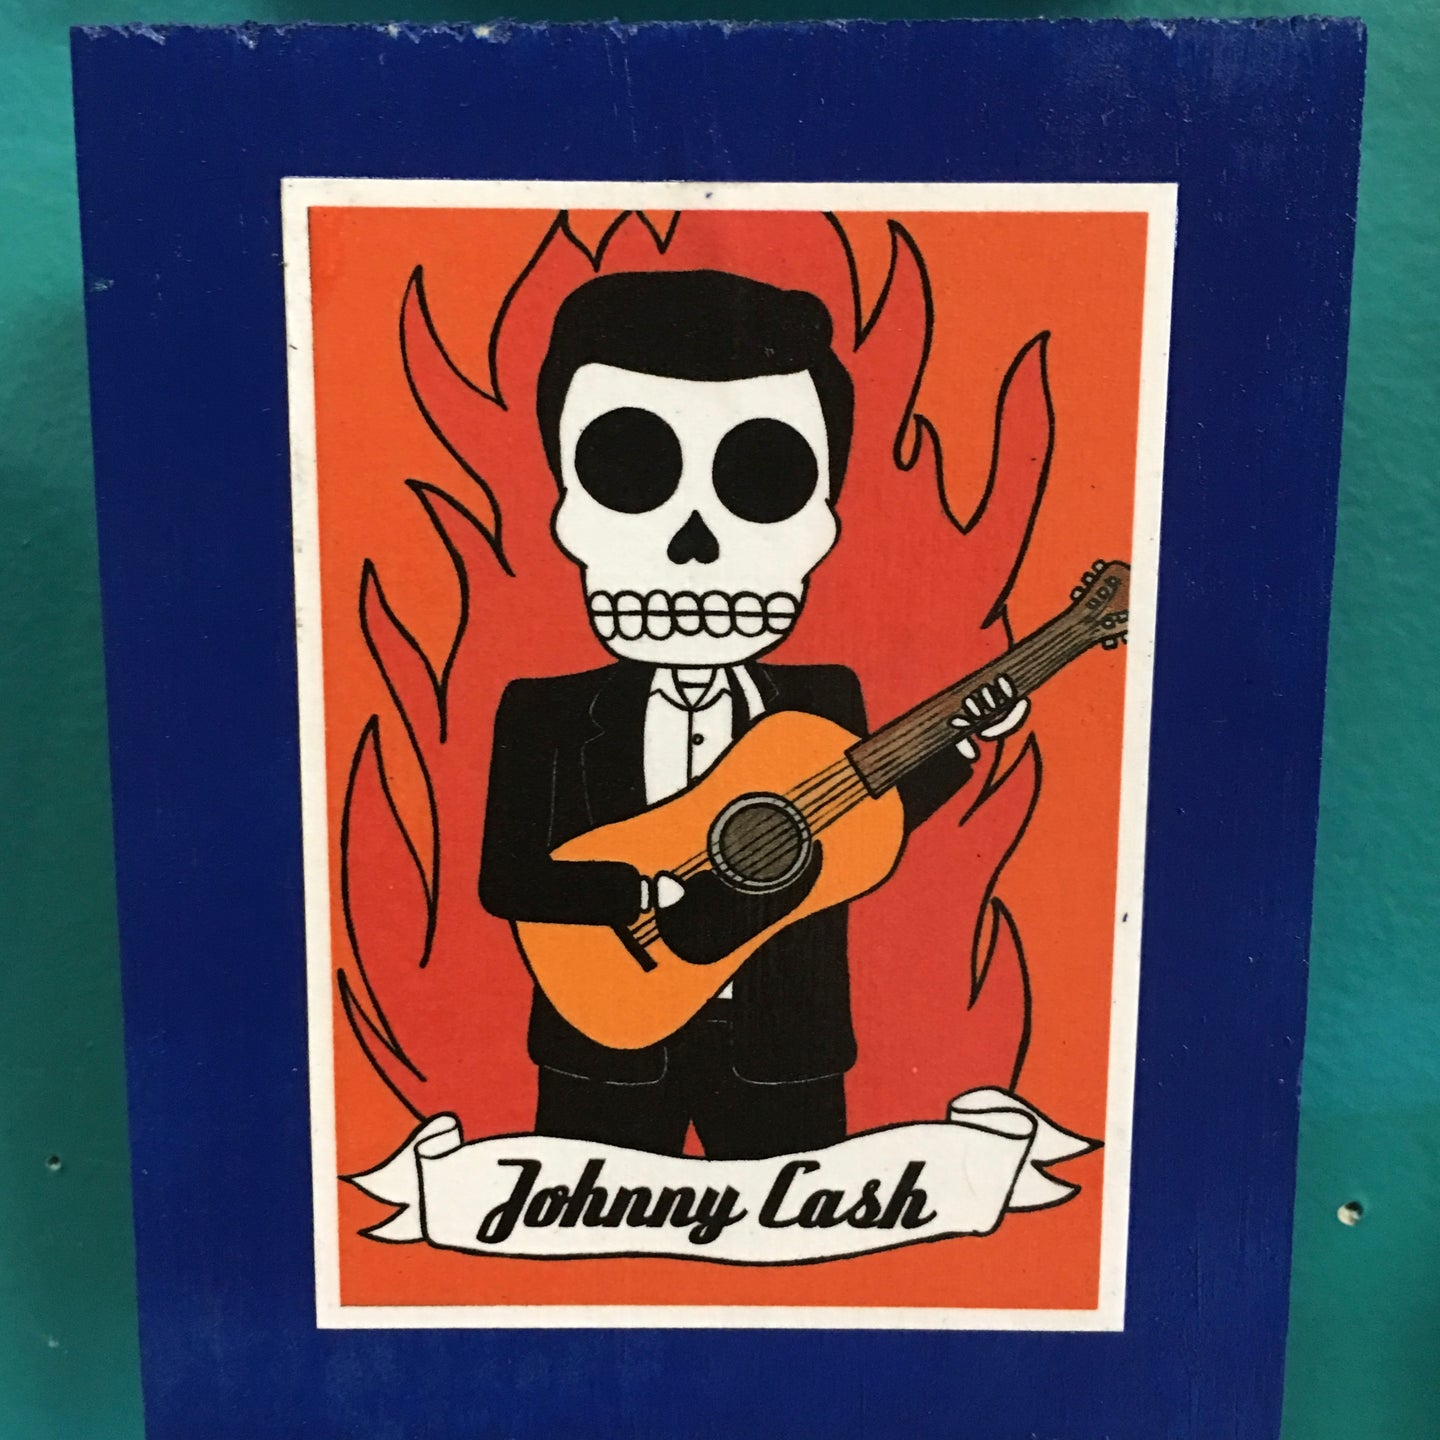 Los Musicians Johnny Cash collectible art tile by Ninoska Arte